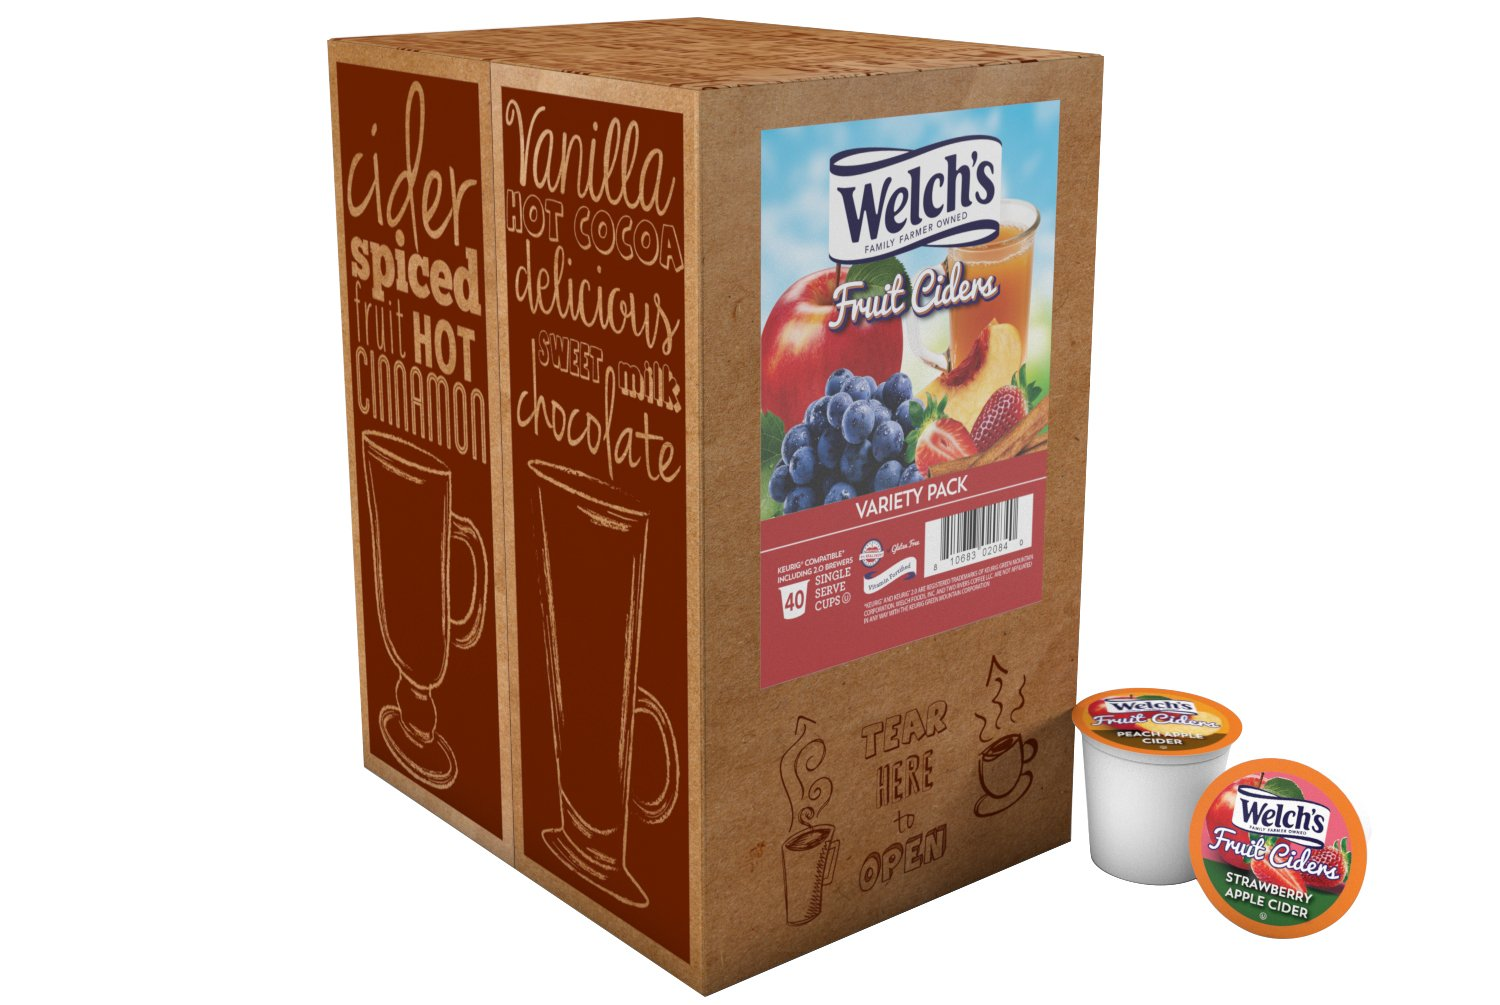 CDM product Welch's Fruit Ciders Variety Pack for Keurig K-Cup Brewers, 40 Count big image